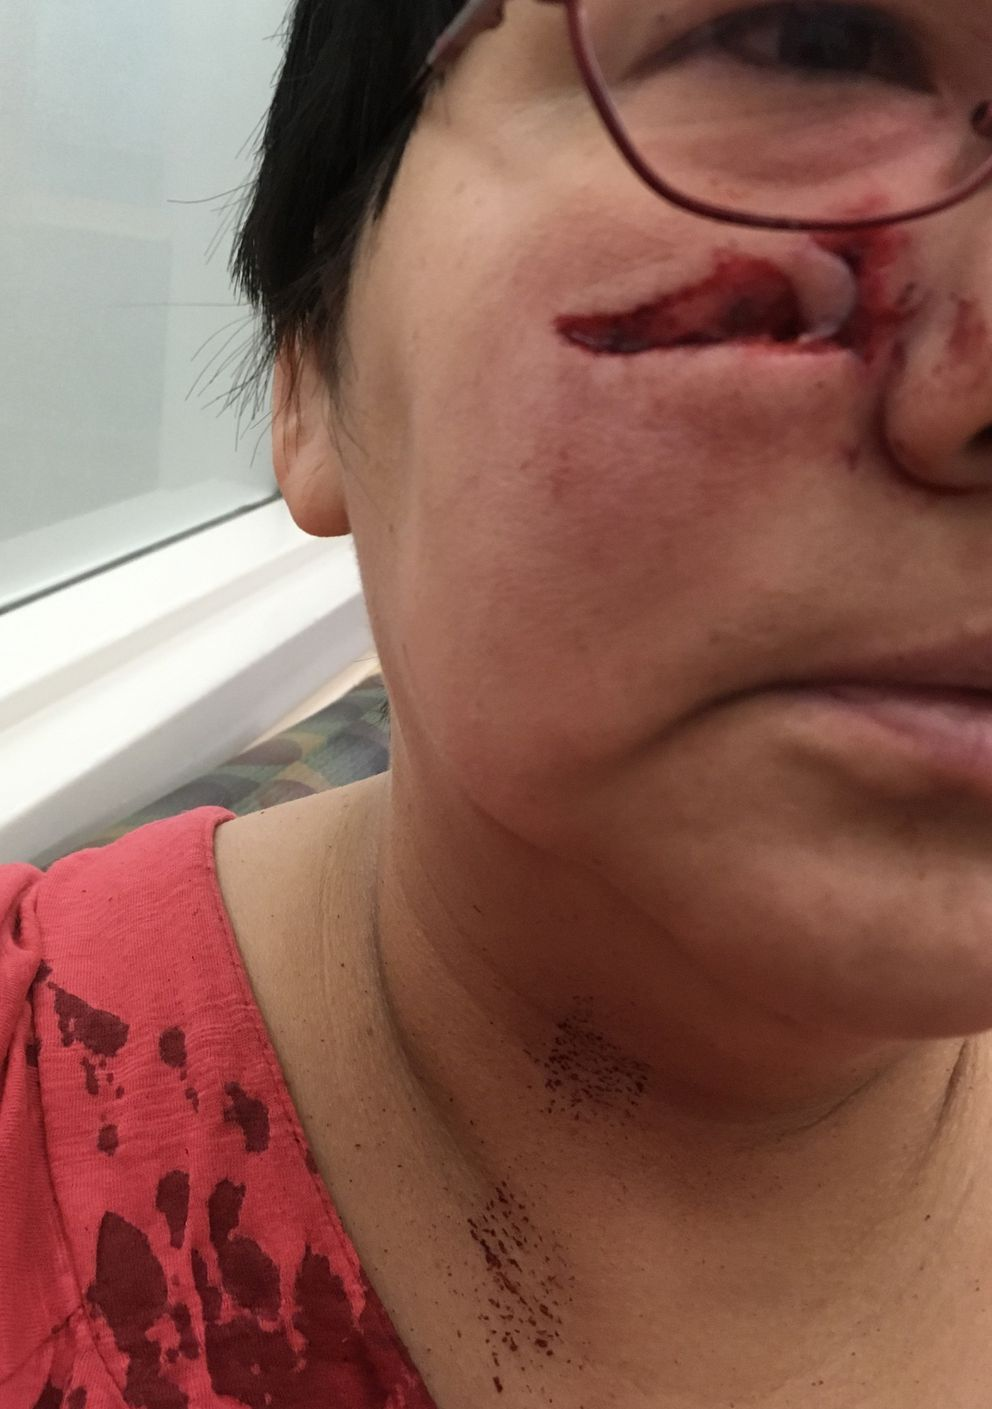 Flossie Spencer was hit with a thrown frying pan on Dec. 31, 2018, while working at a Midtown Anchorage rooming house. (Photo courtesy Flossie Spencer)